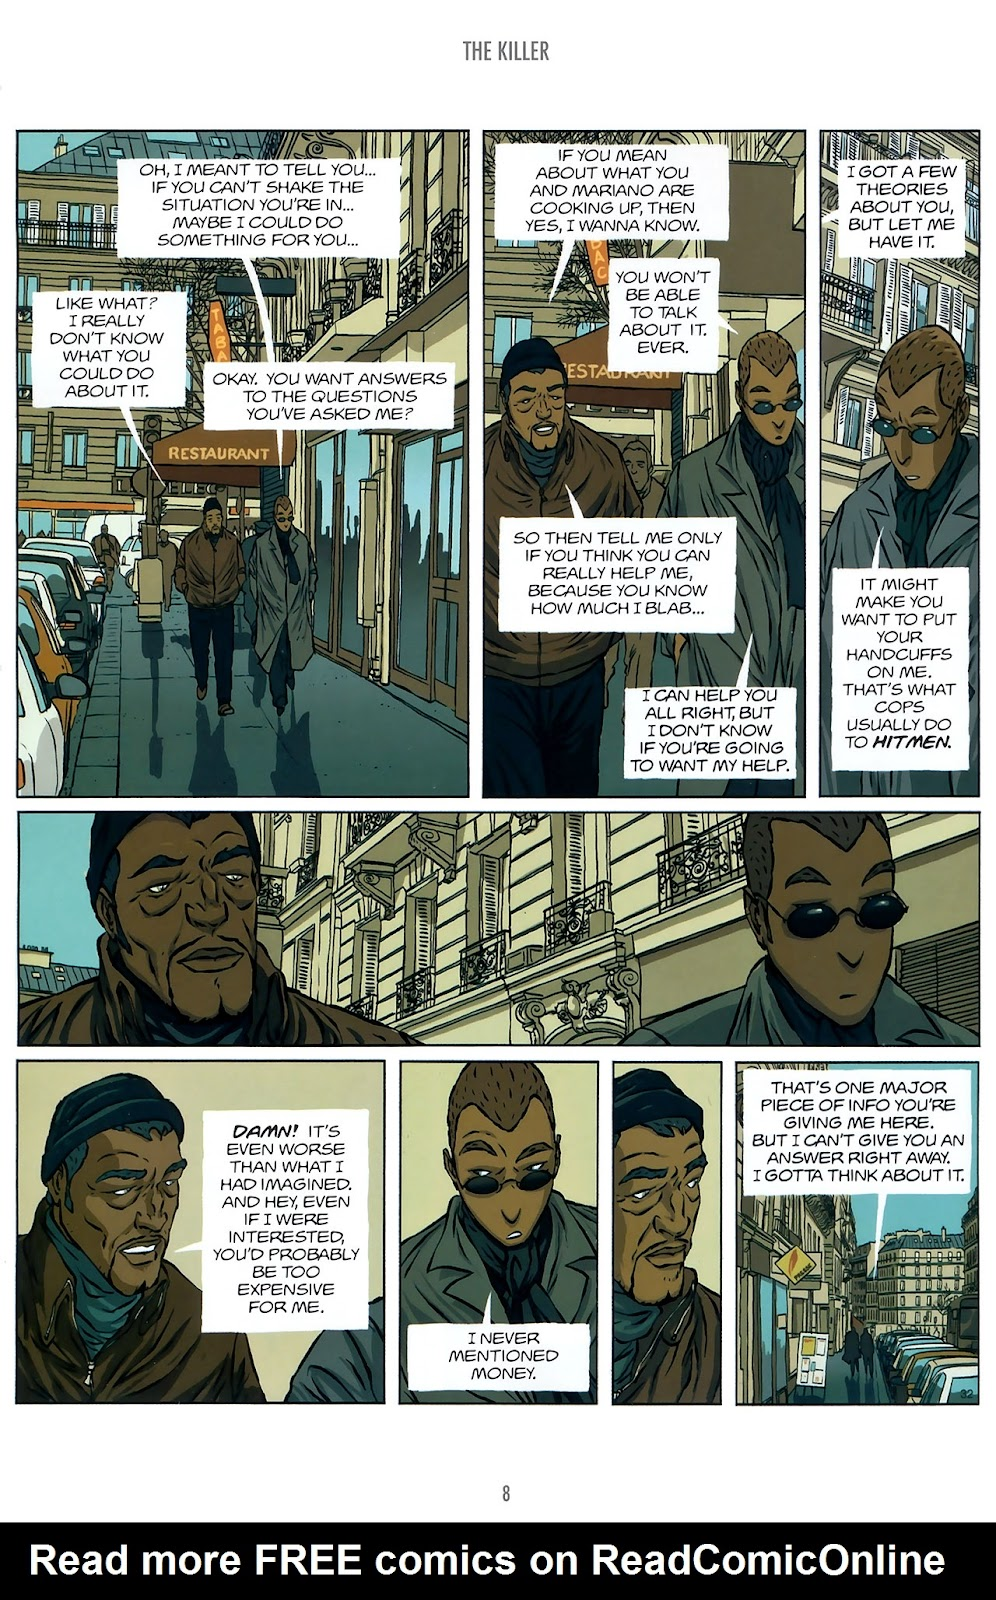 Read online The Killer comic -  Issue #10 - 8